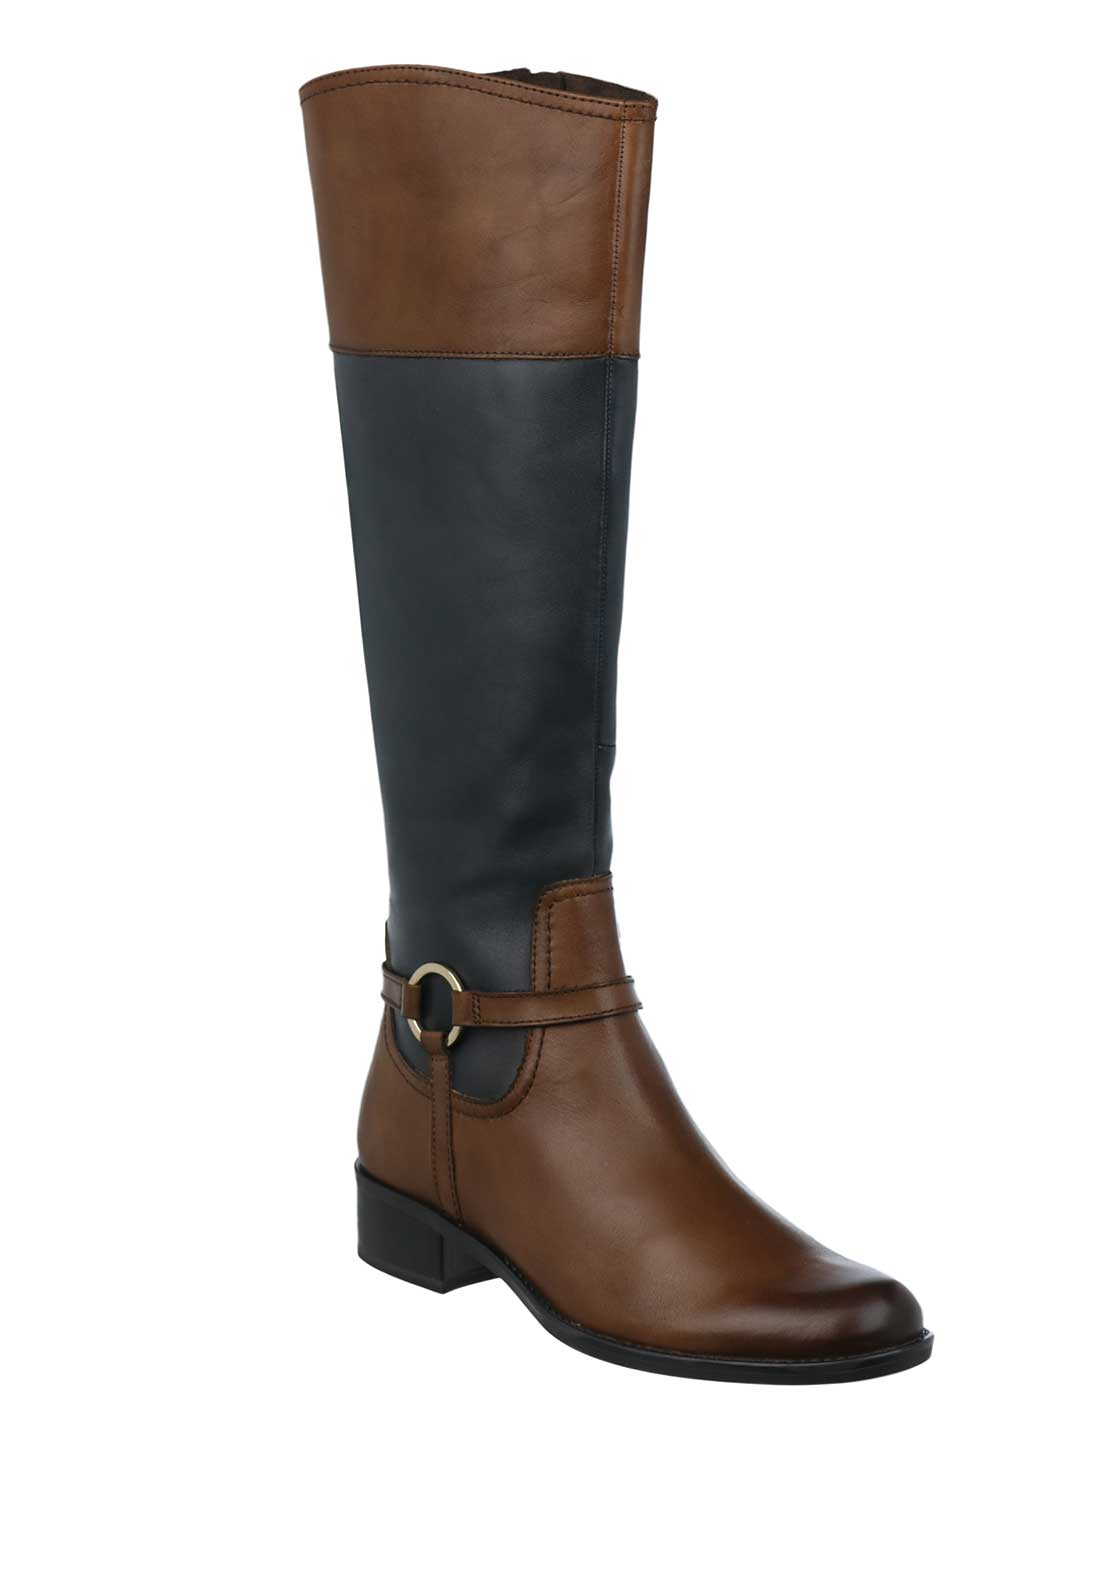 Caprice Leather Contrast Long Rider Boots, Tan